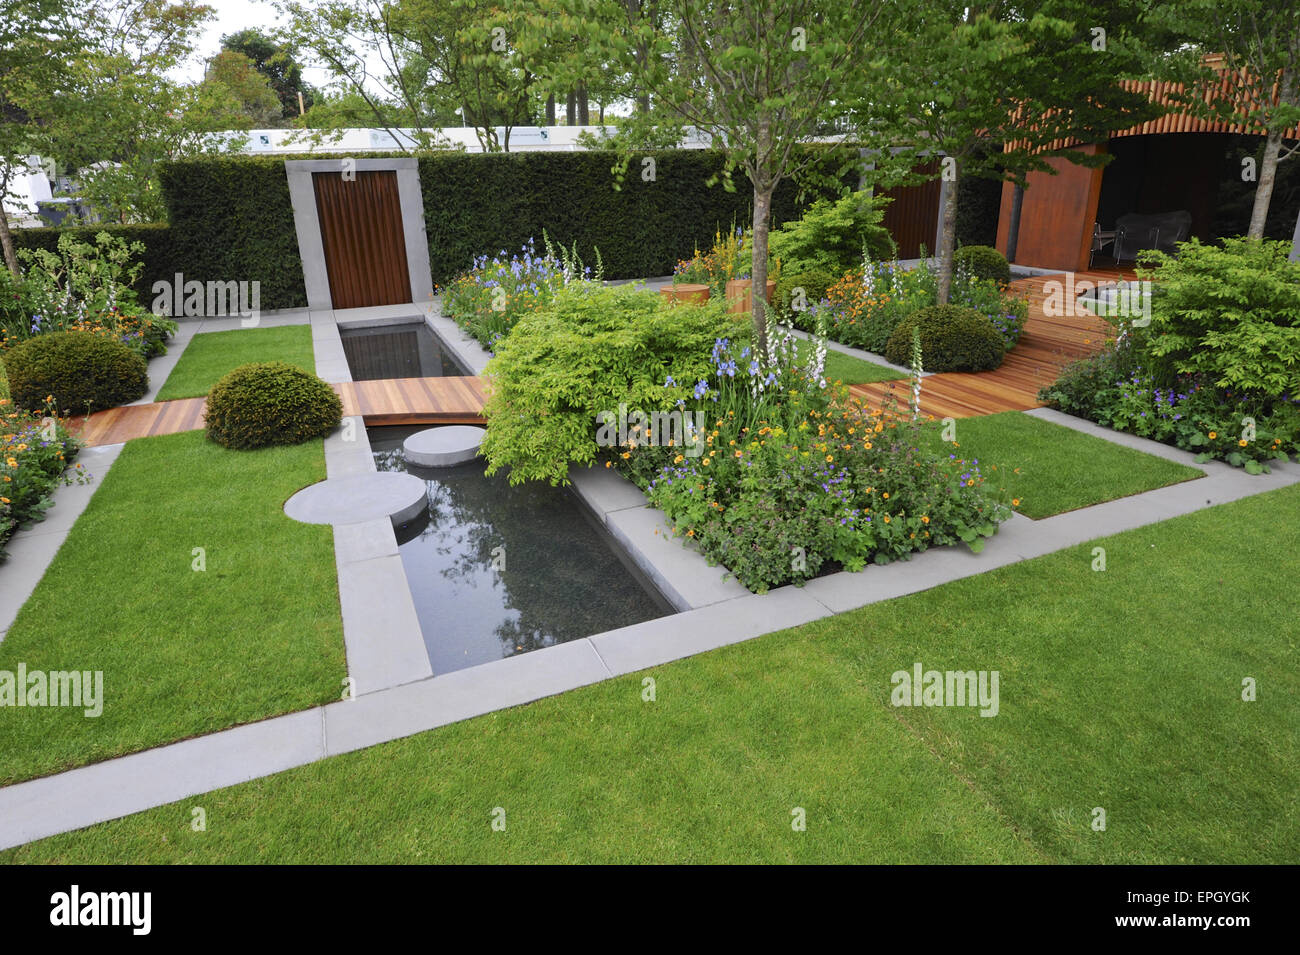 London uk 18th may 2015 the homebase urban retreat for Garden decking homebase